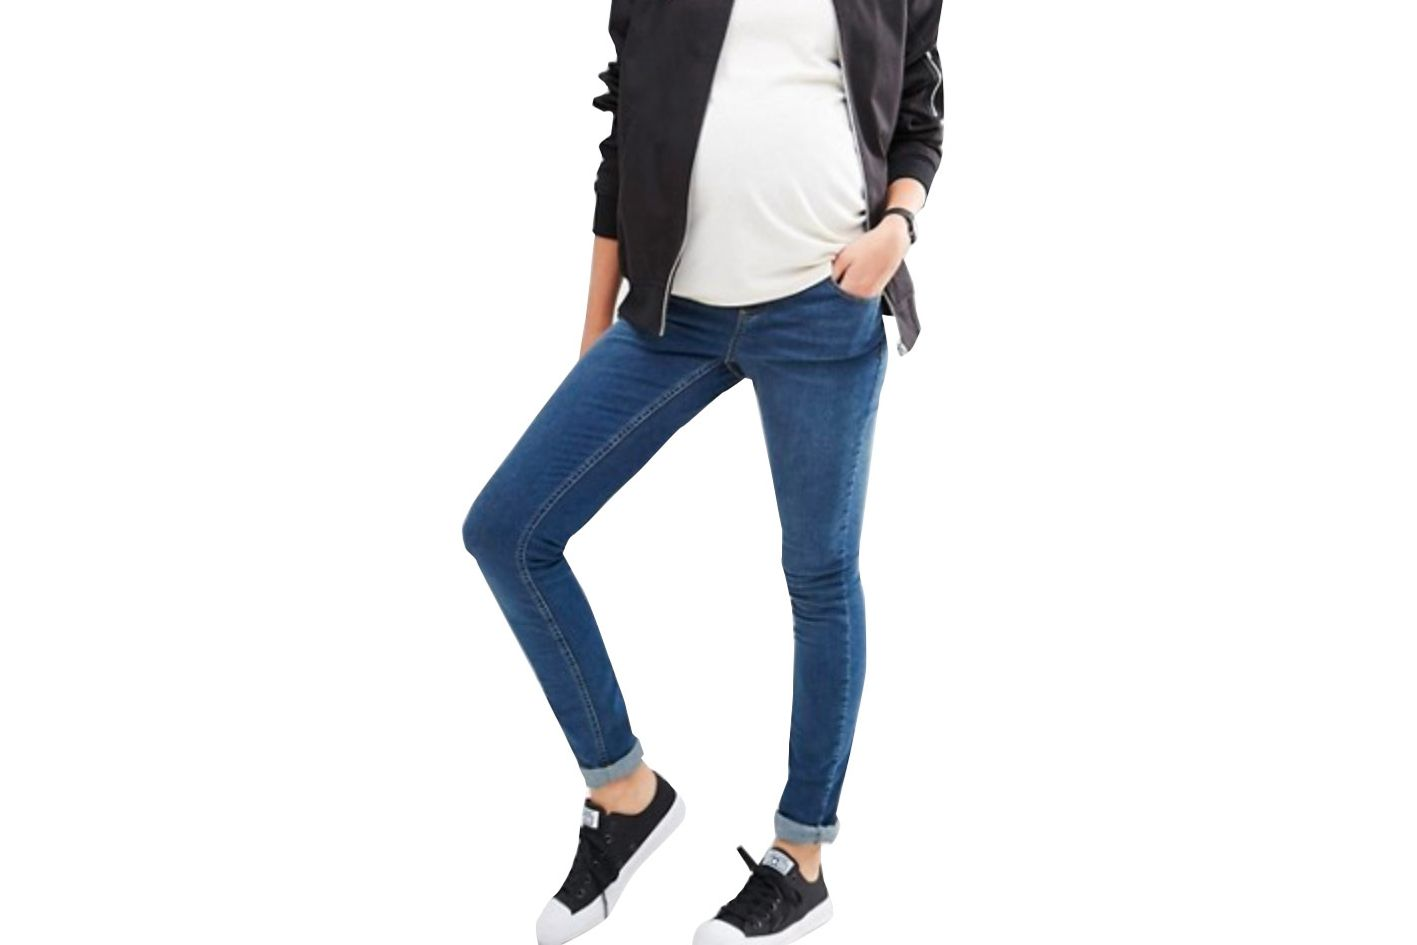 74796b172171e Best Maternity Jeans for Petite Women. Best Maternity petite Jeans. ASOS  Maternity Petite Ridley Skinny Jean in Midwash With Over the Bump Waistband